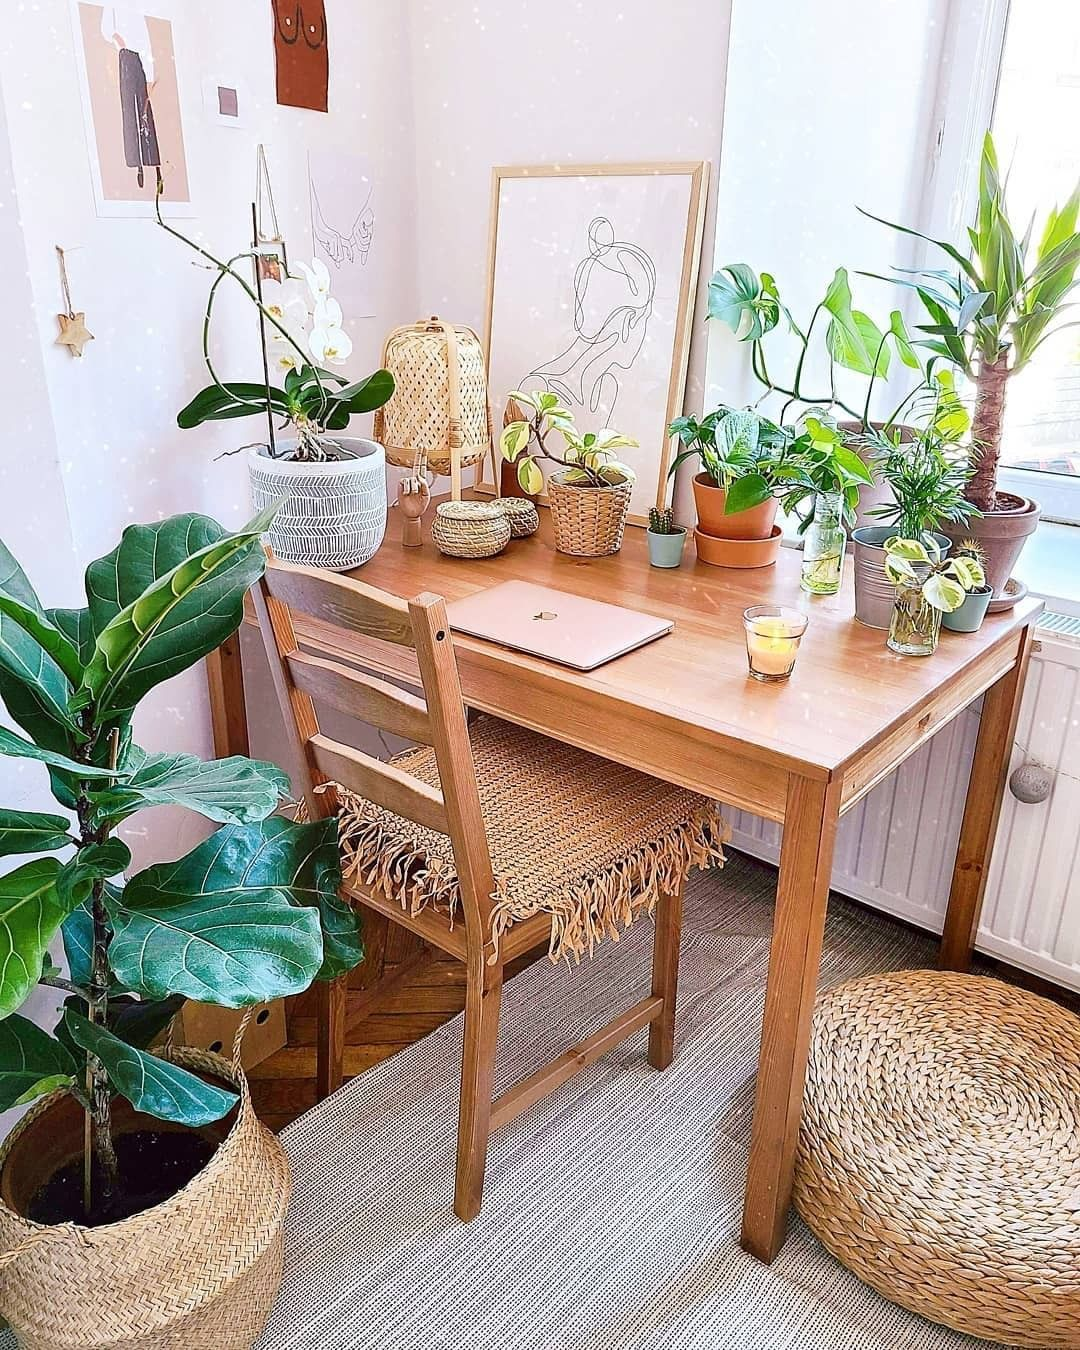 Fy On Instagram Cute Bright Working Space Via Interioryesplz Shop This Home Office Look By Foll Flat Decor Aesthetic Room Decor Study Desk Decor